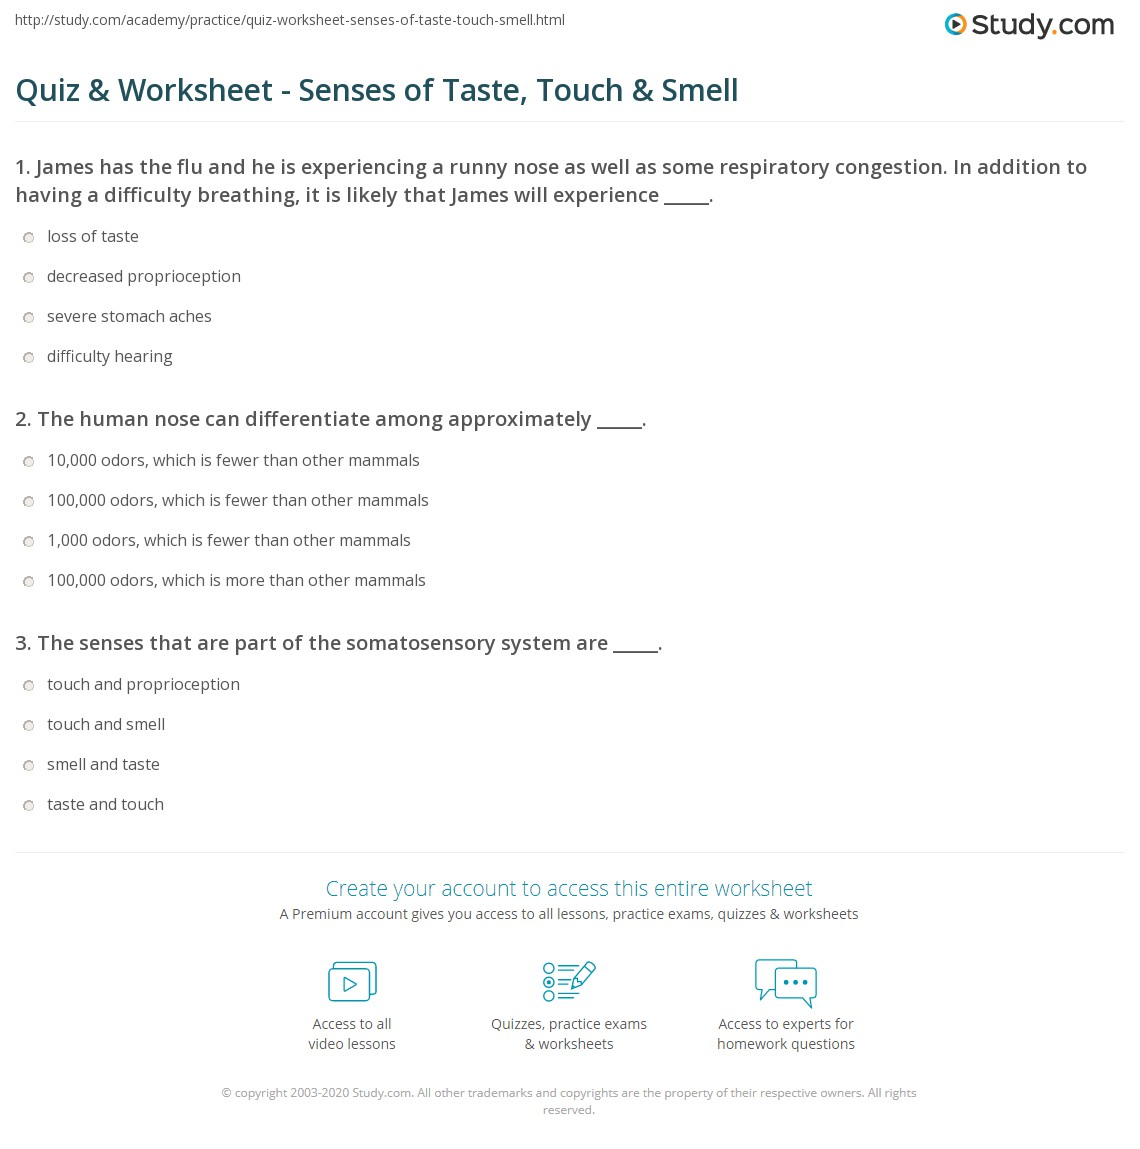 worksheet Taste And Smell Worksheet quiz worksheet senses of taste touch smell study com print proprioception the somatosensory system worksheet